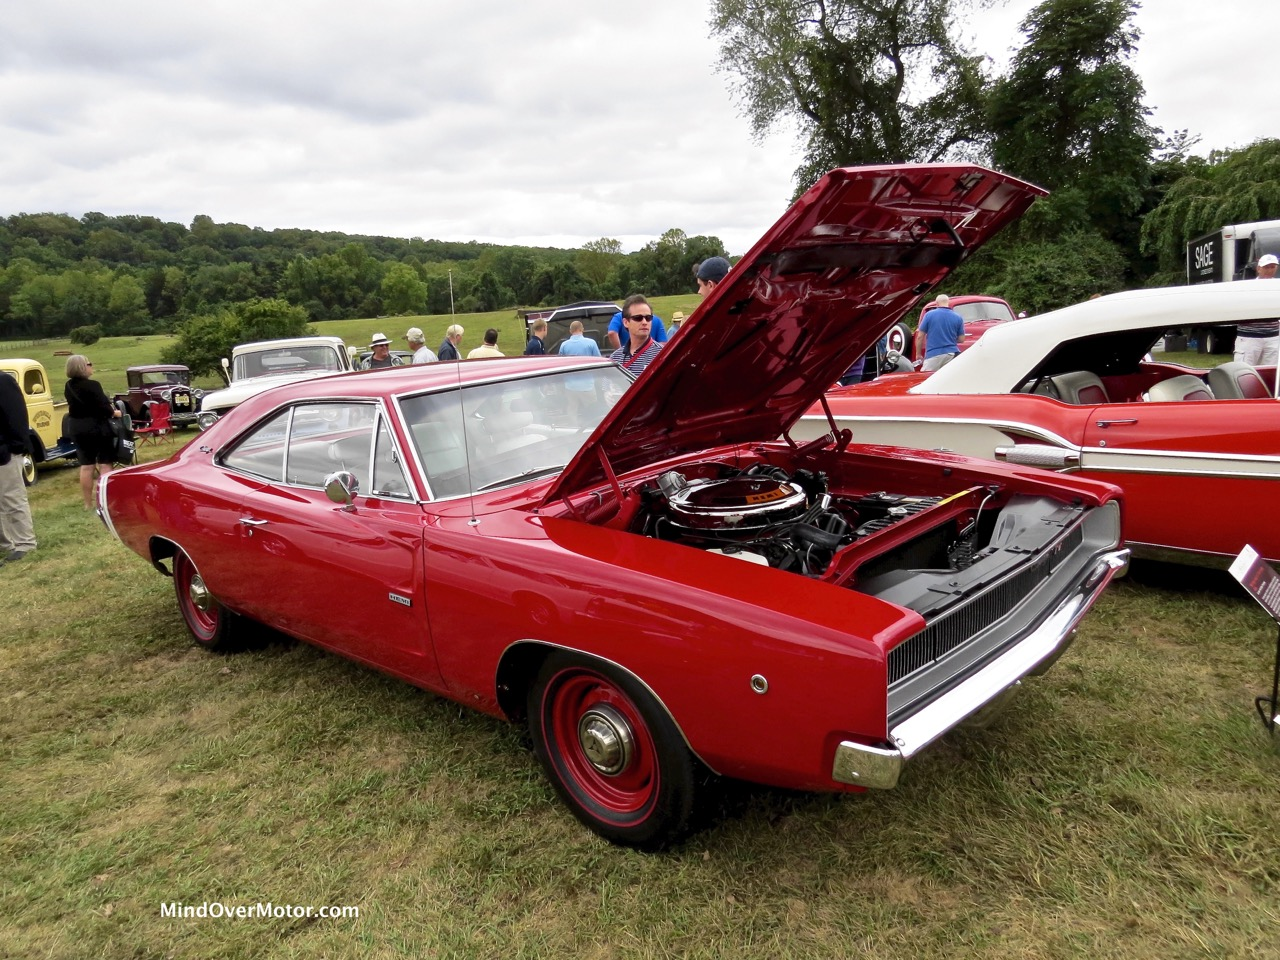 1968 Dodge Charger R:T Front